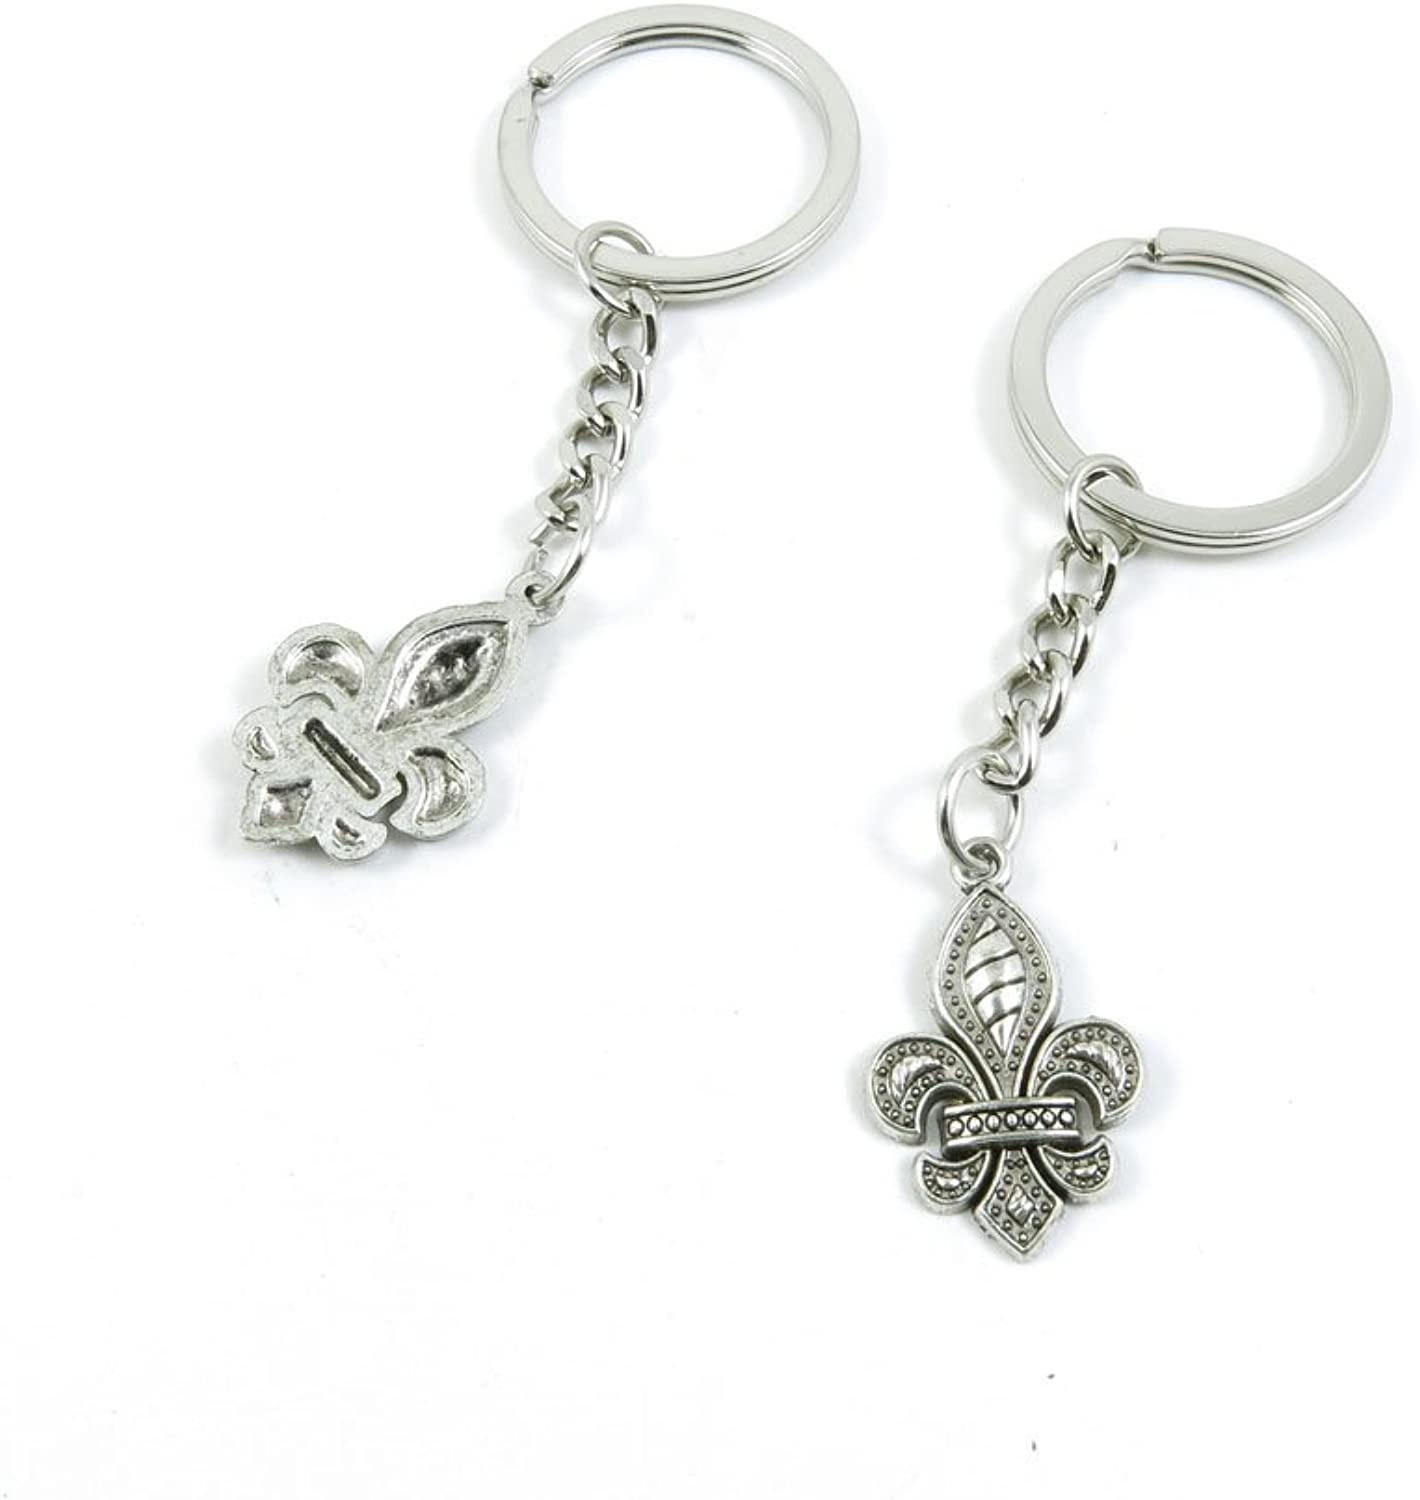 100 Pieces Keychain Keyring Door Car Key Chain Ring Tag Charms Bulk Supply Jewelry Making Clasp Findings M4PT3U Fleur De Lis Iris Lily